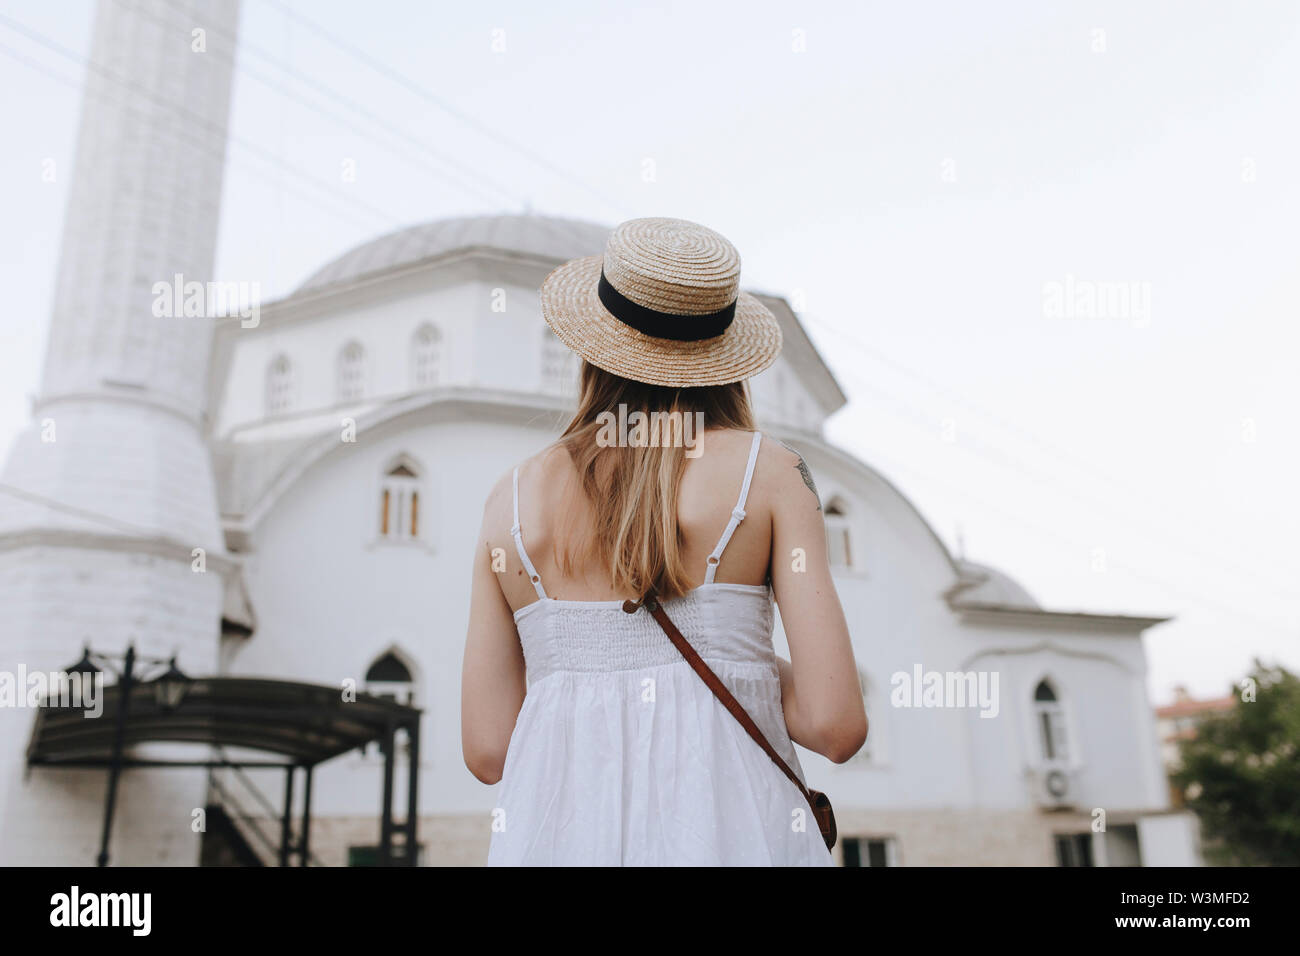 Young woman in straw hat by building in Marmaris, Turkey - Stock Image